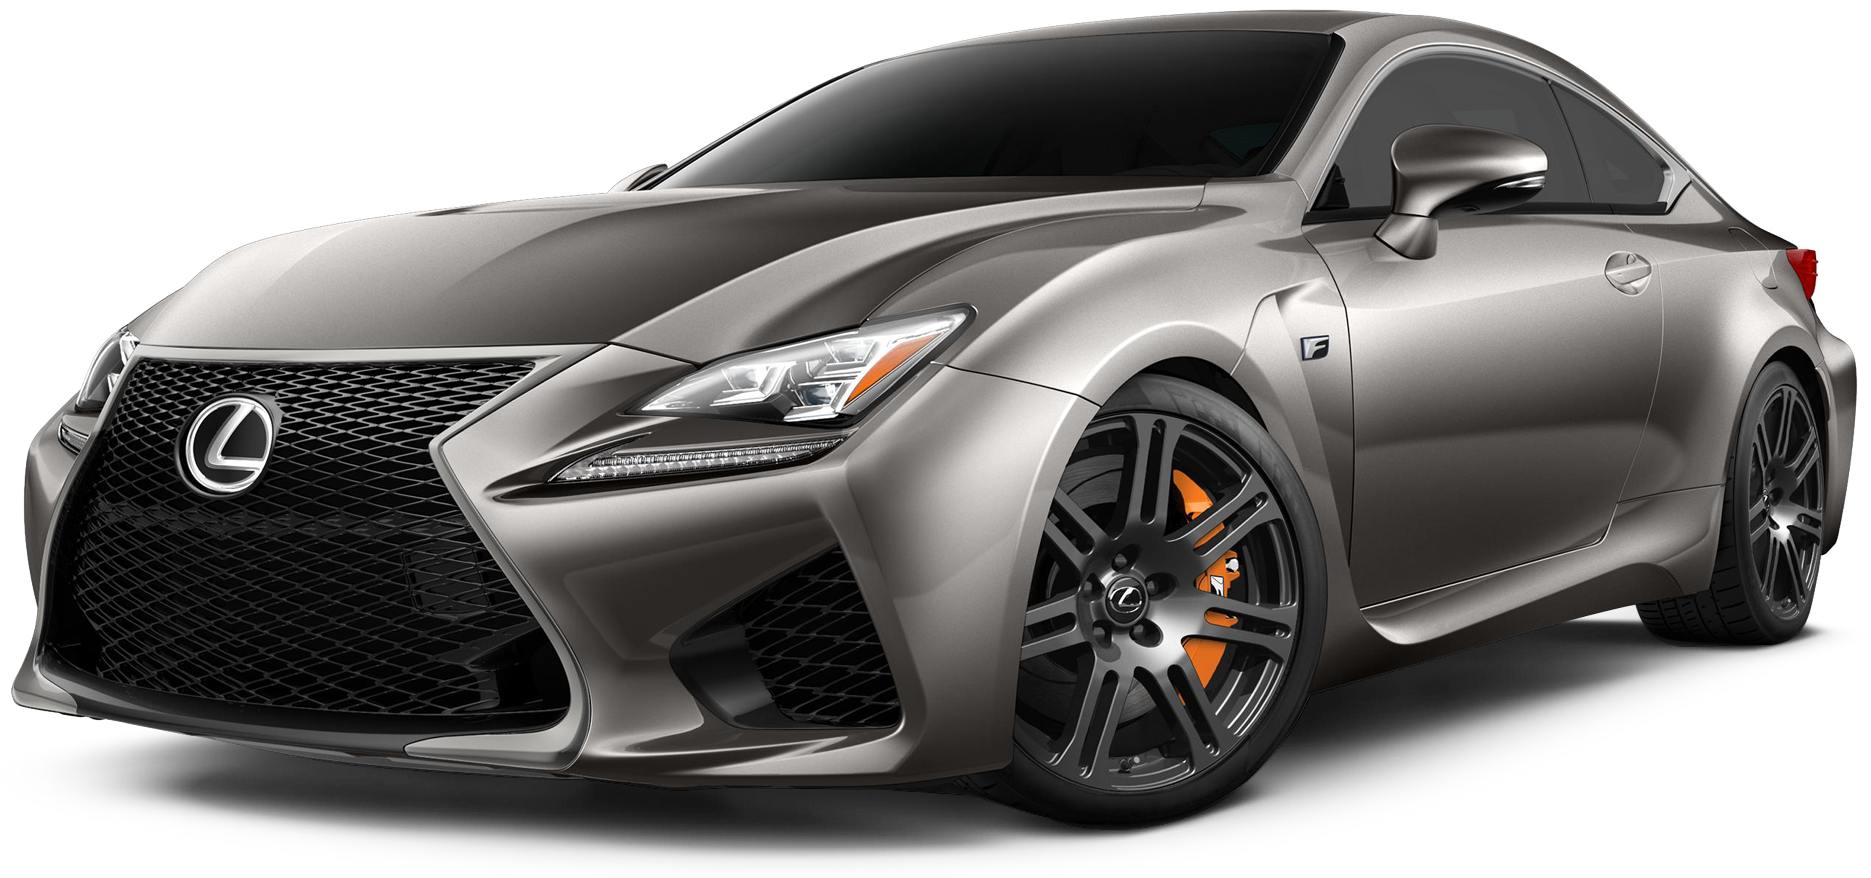 2019 Lexus Rc F Incentives Specials Offers In Mt Kisco Ny